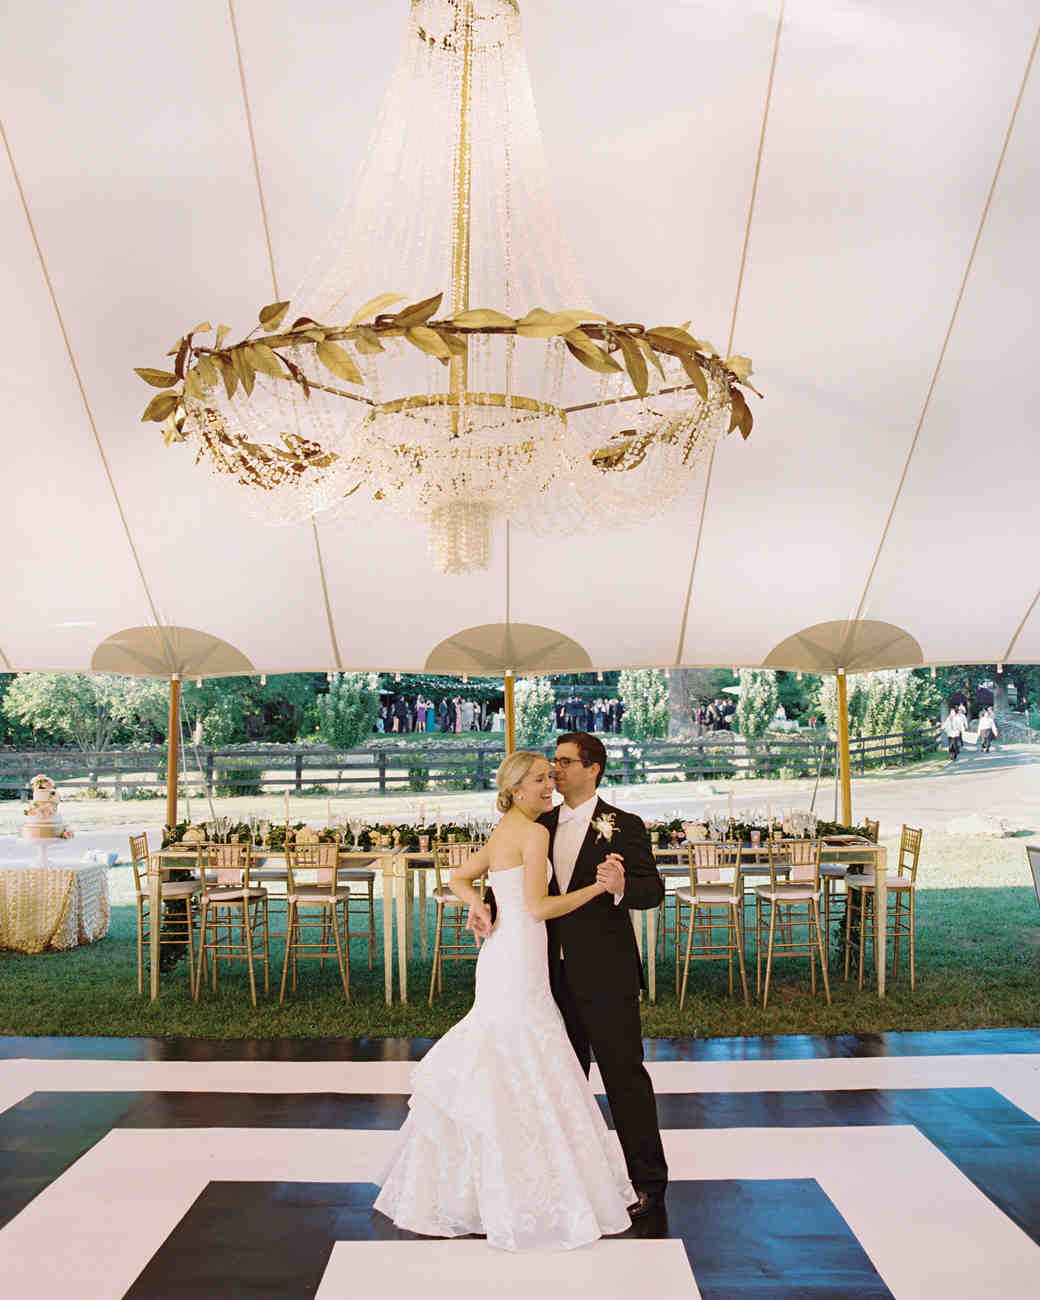 wedding chandelier greek style large tent centerpiece